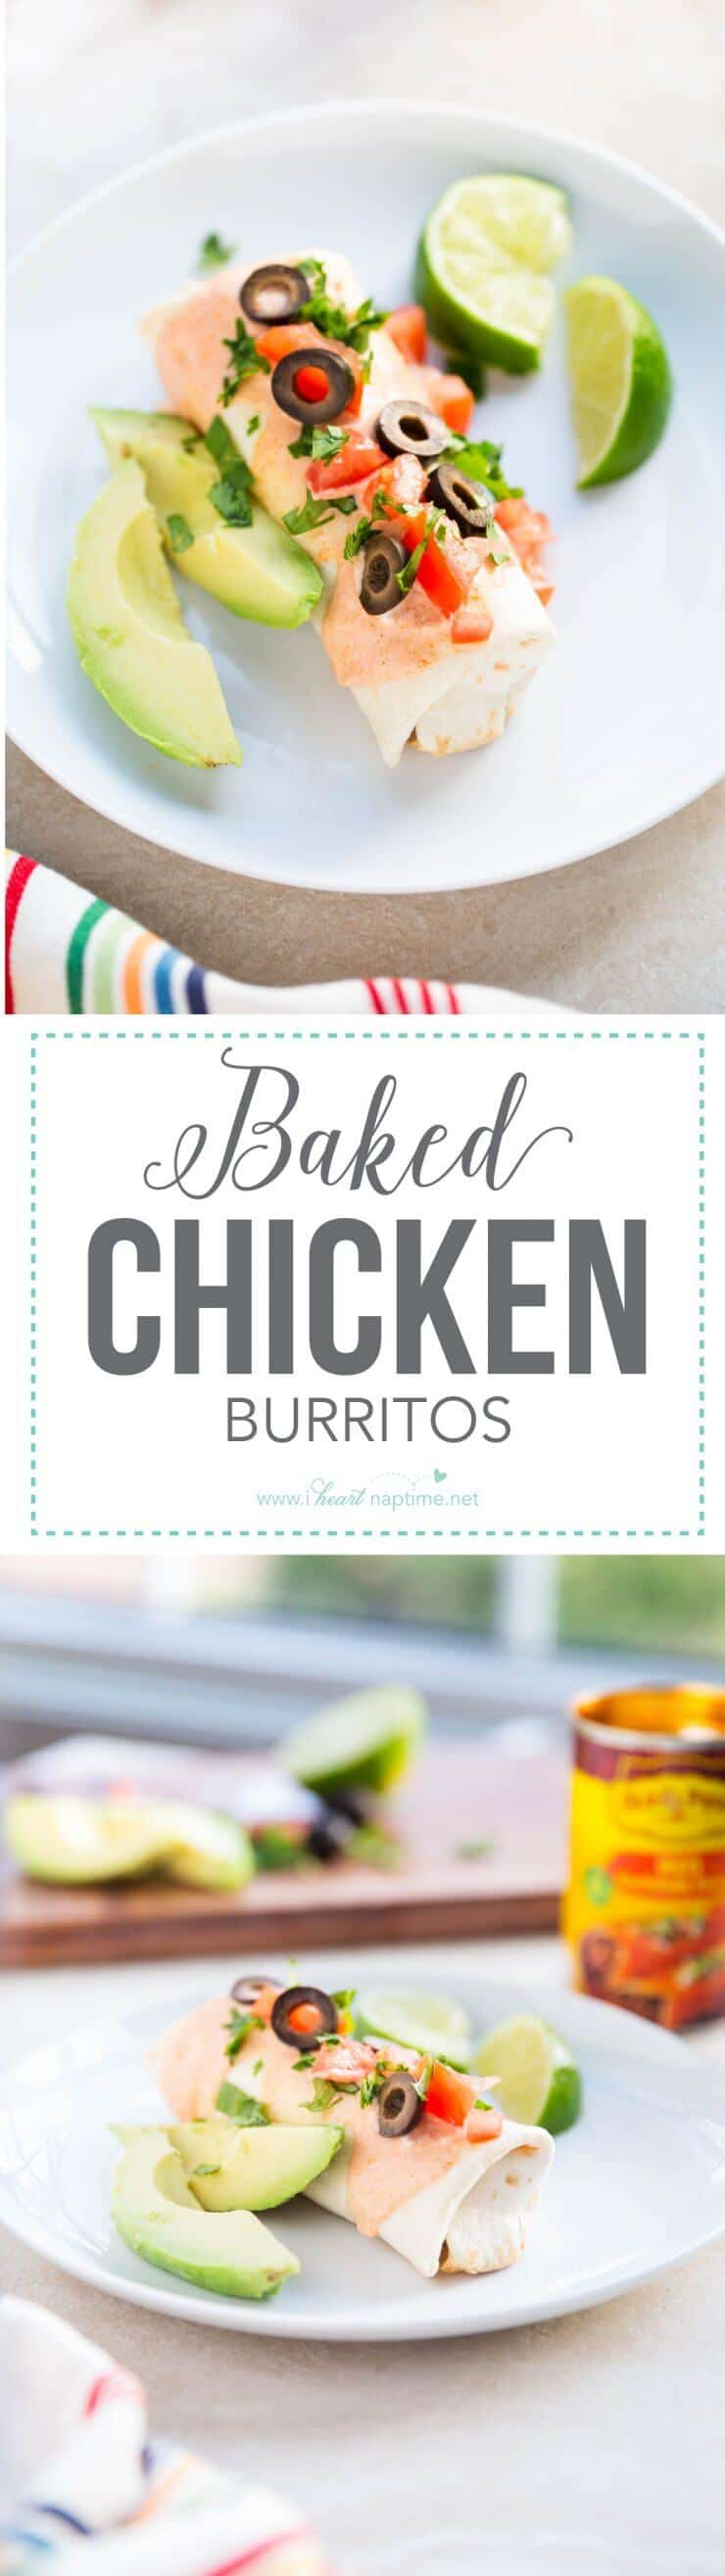 Baked Chicken Burritos... an easy and delicious meal to make in less than 30 minutes. I love to top my burrito with tomatoes, avocado or guacamole, cilantro and olives.